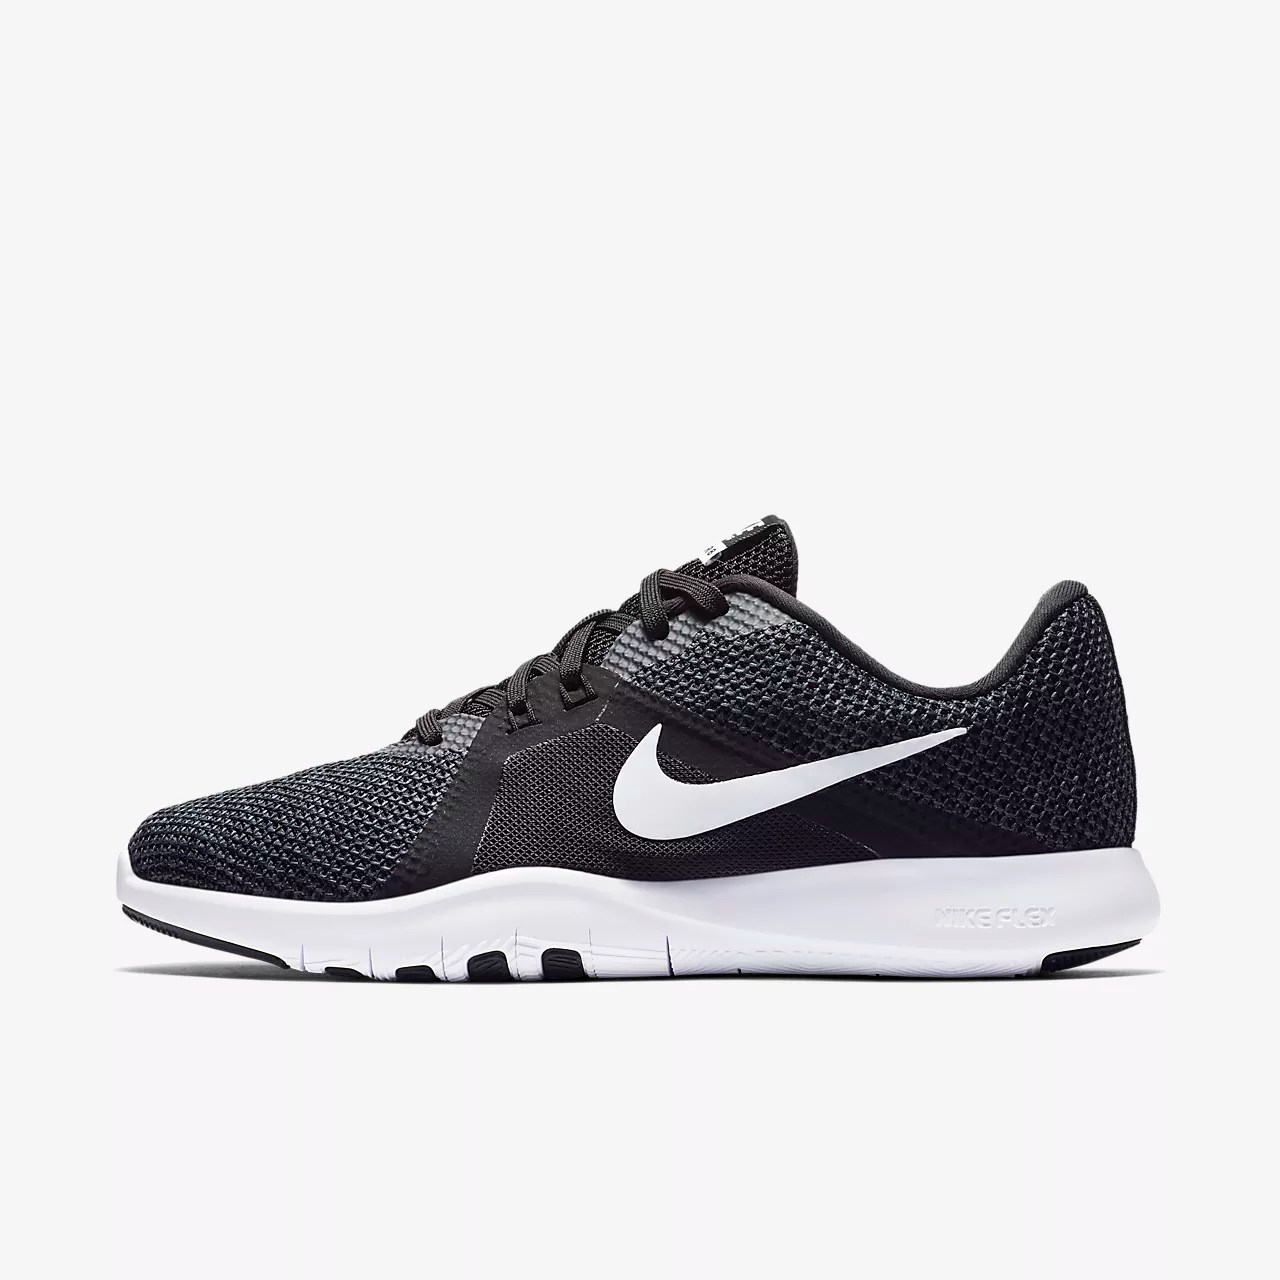 Nike Running Trainer Nike Flex Trainer 8 Wide Women S Training Shoe